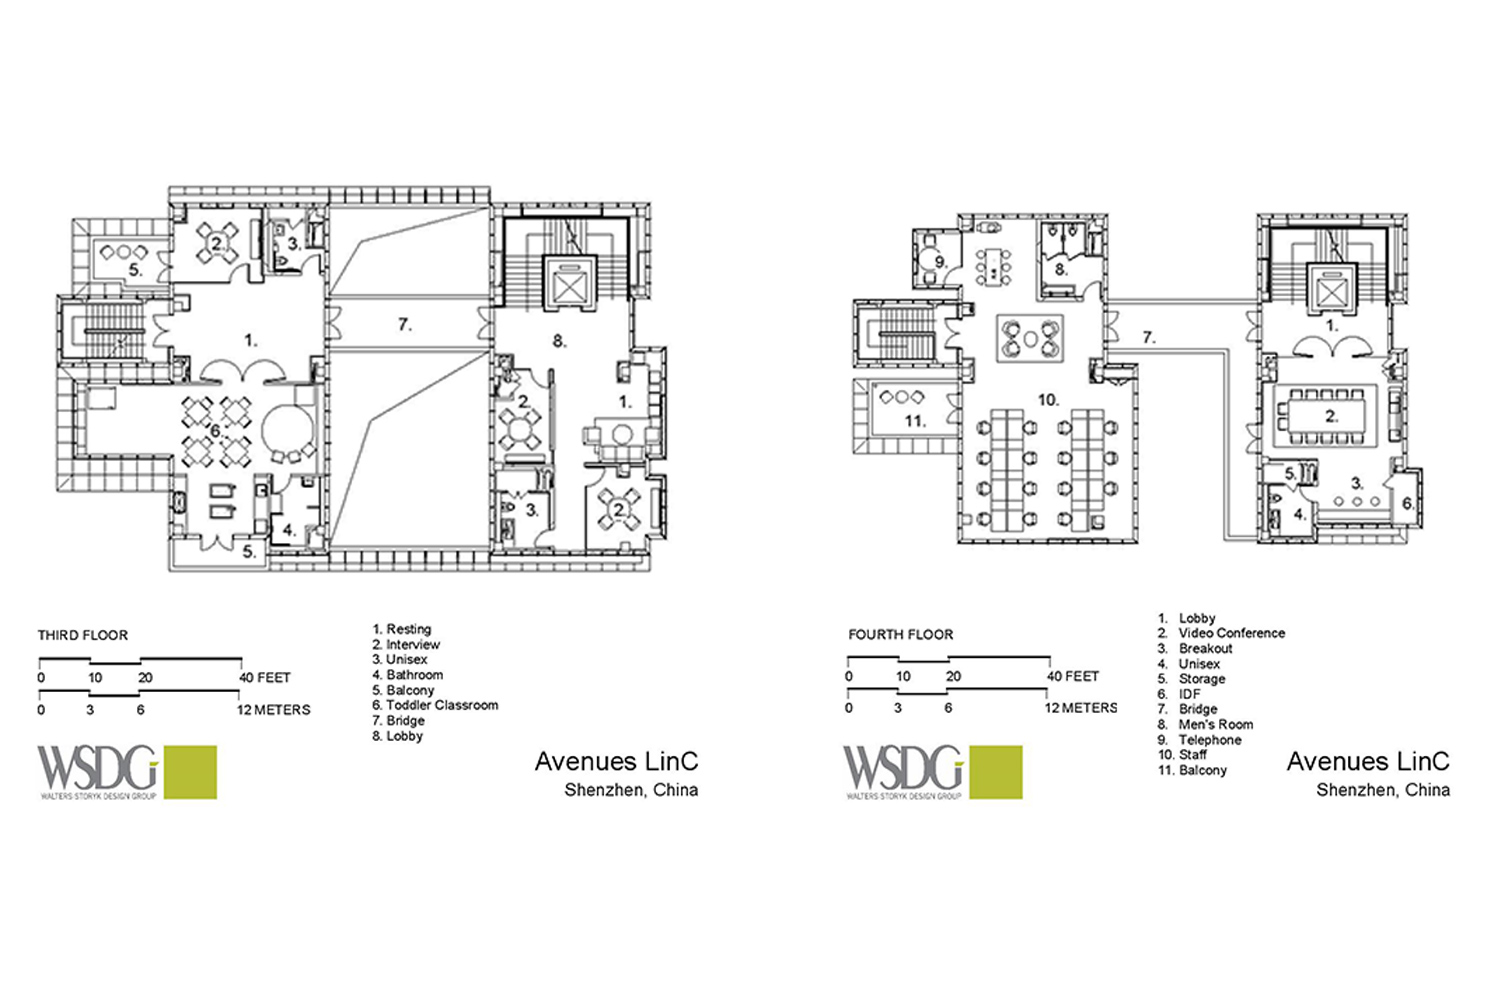 Avenues: The World School in Shenzhen, China consists of two locations in Shenzhen's Nanshan District. WSDG provided acoustic and A/V systems consulting as well as construction supervision for the two locations. Presentation drawing 2.